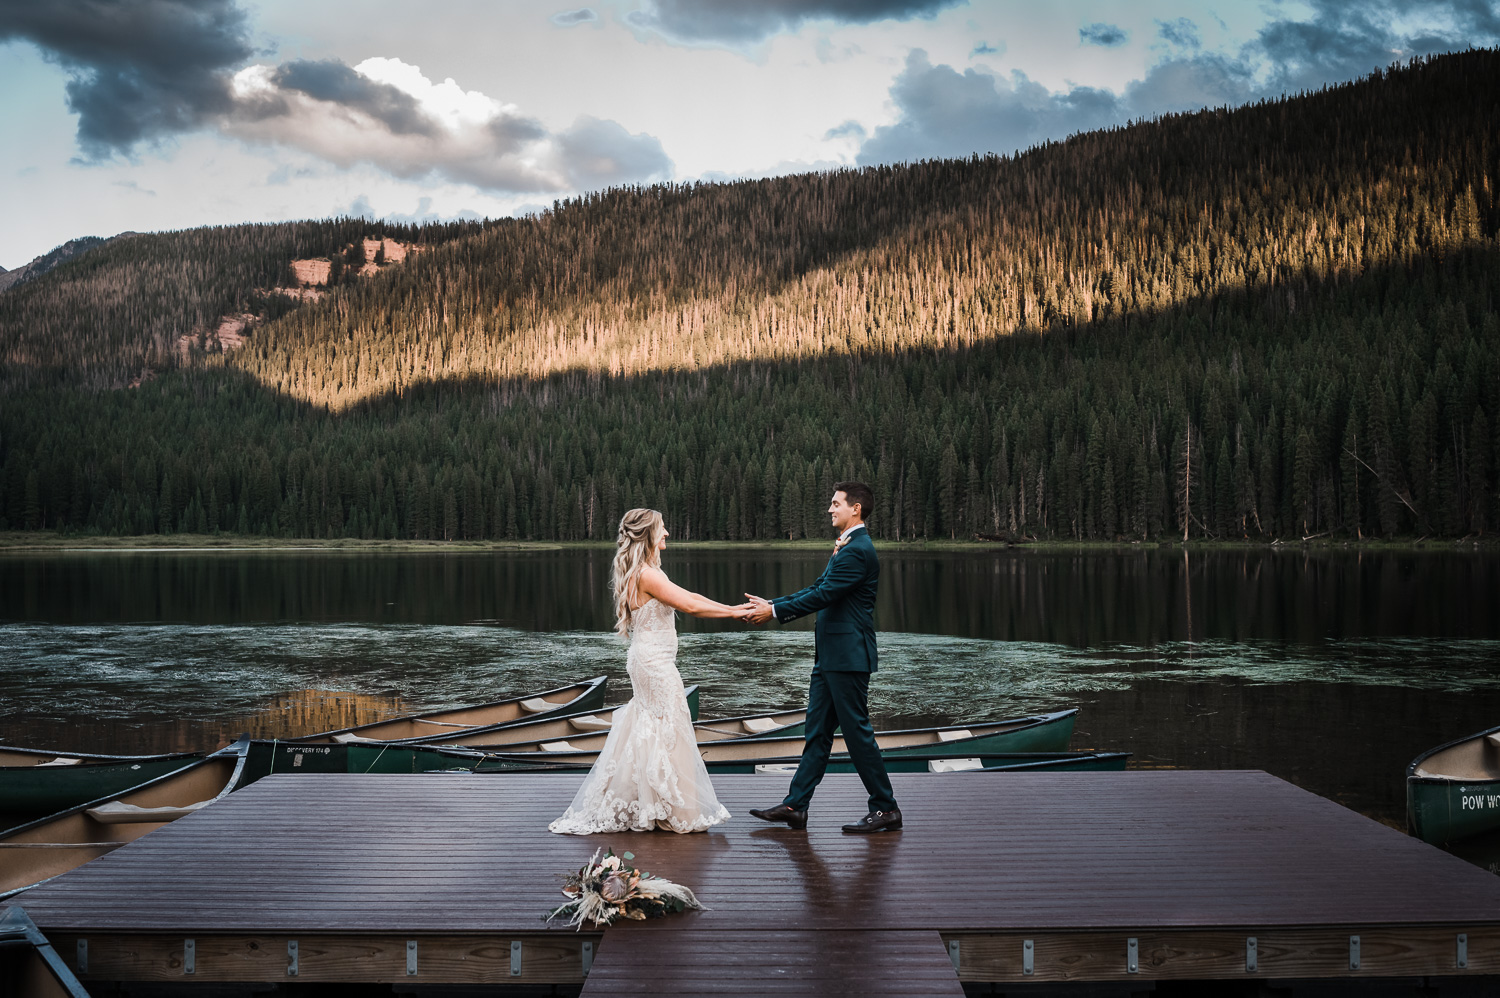 Bride and Groom dance on the lake dock at Piney River Ranch